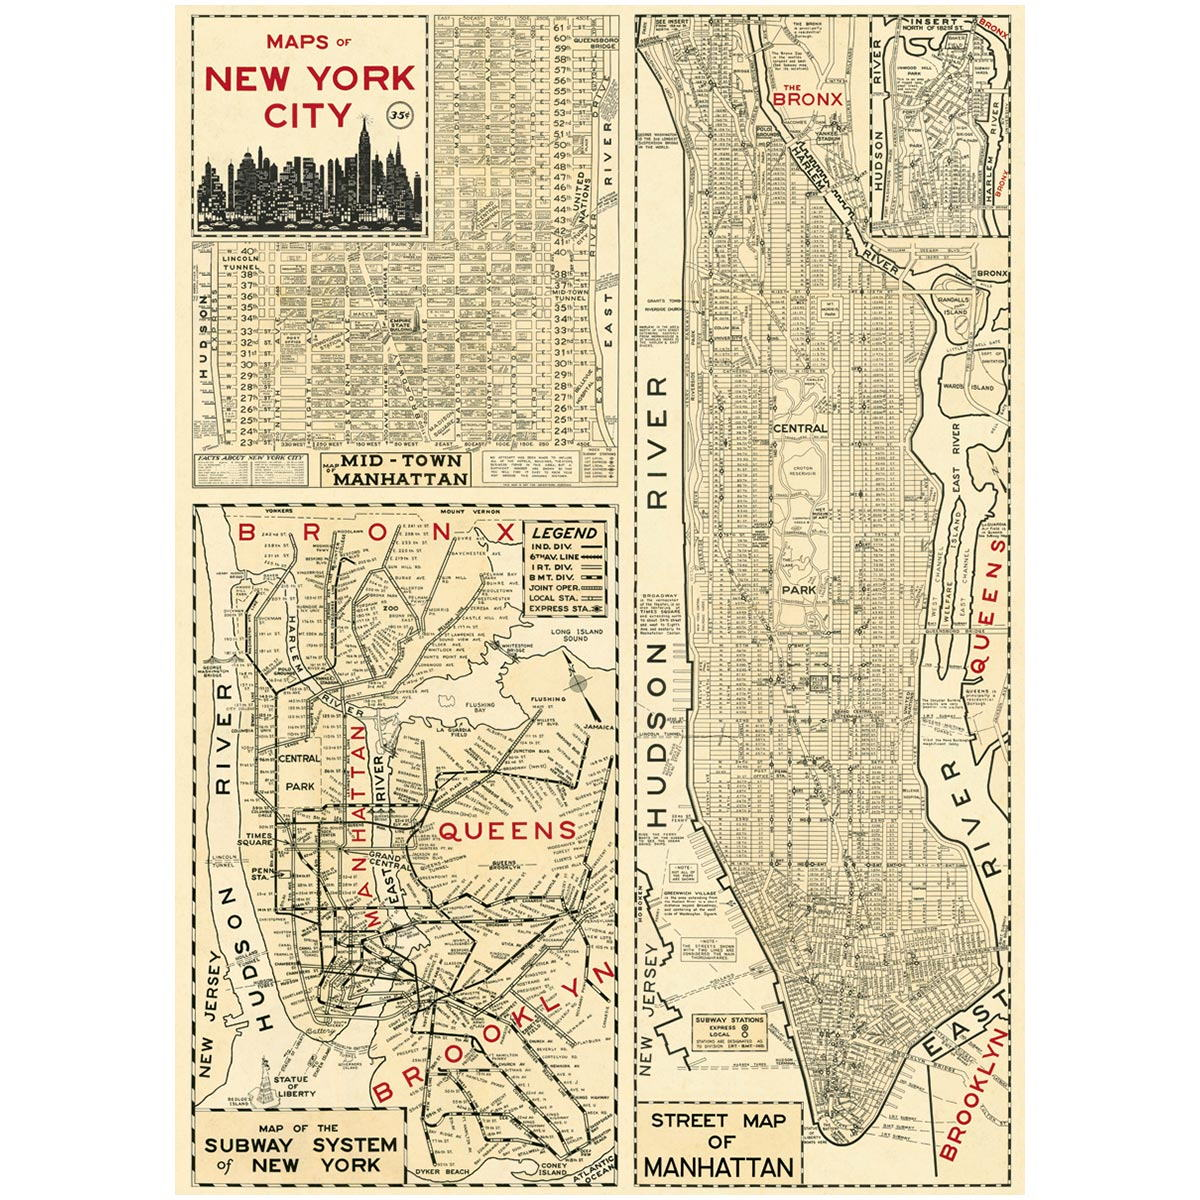 NYC Manhattan Poster Vintage Style Street Subway Map on midtown manhattan, harlem map manhattan, interactive nyc subway map manhattan, map of upper manhattan, e train map manhattan, nyc bus map manhattan, upper west side map manhattan, eataly manhattan, detailed map of manhattan, walking map of manhattan, times square map manhattan, bronx map manhattan, printable map of manhattan, theatre district map manhattan, long island map manhattan, full map of manhattan, united states map manhattan, yonkers map manhattan, map of downtown manhattan, tourist map of manhattan,